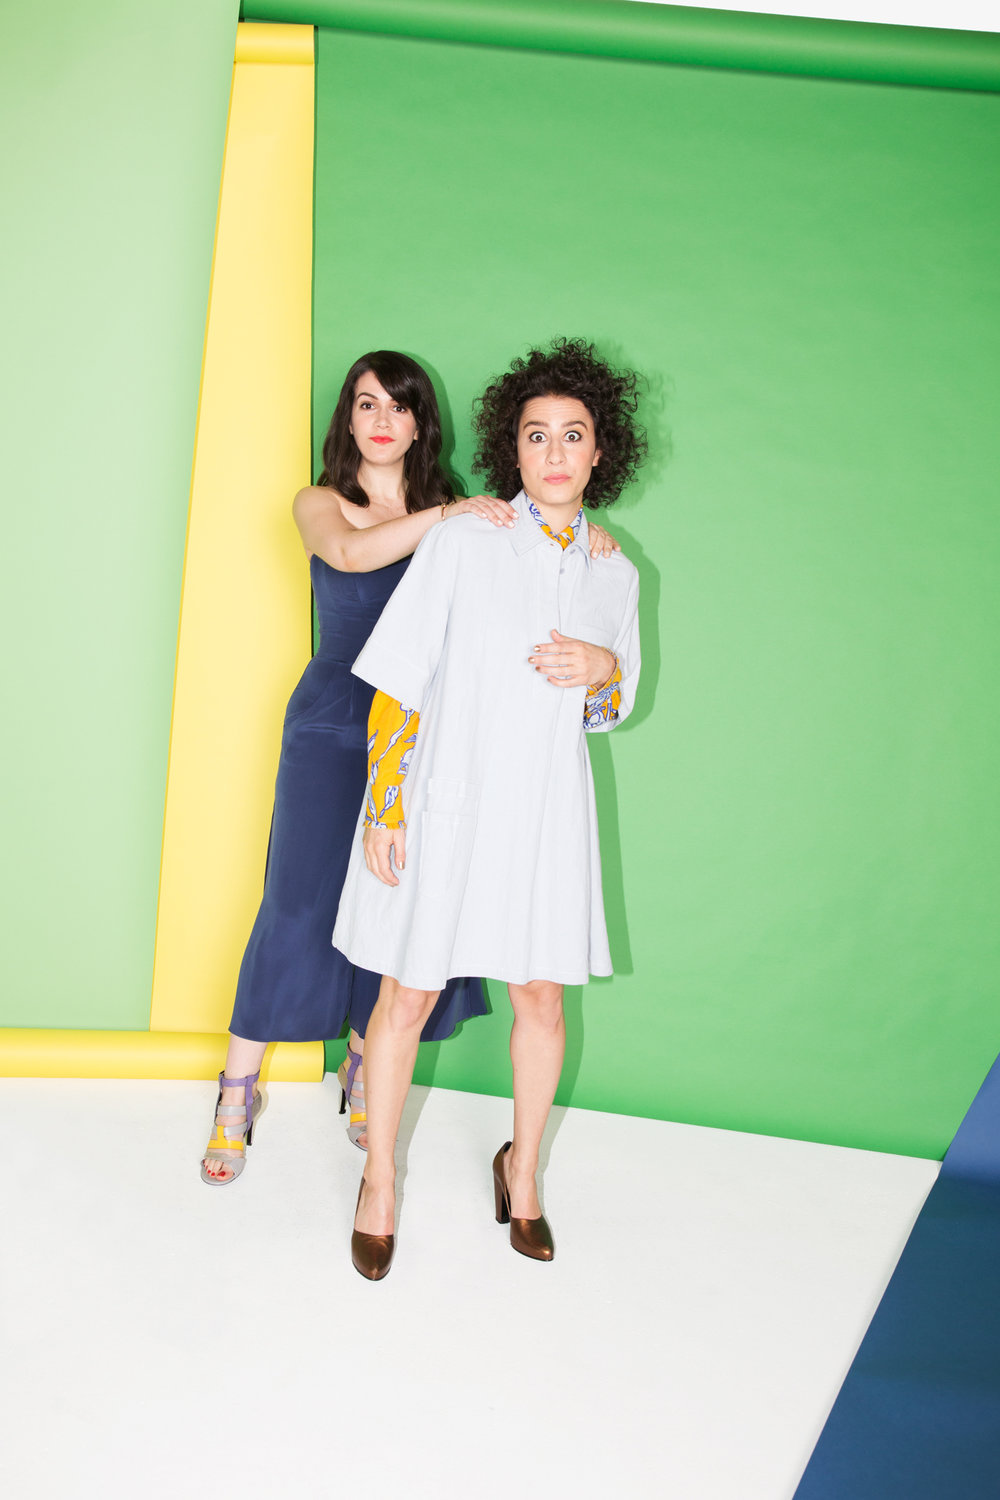 KATE OWEN | ILANA GLAZER & ABBI JACOBSON // BROAD CITY